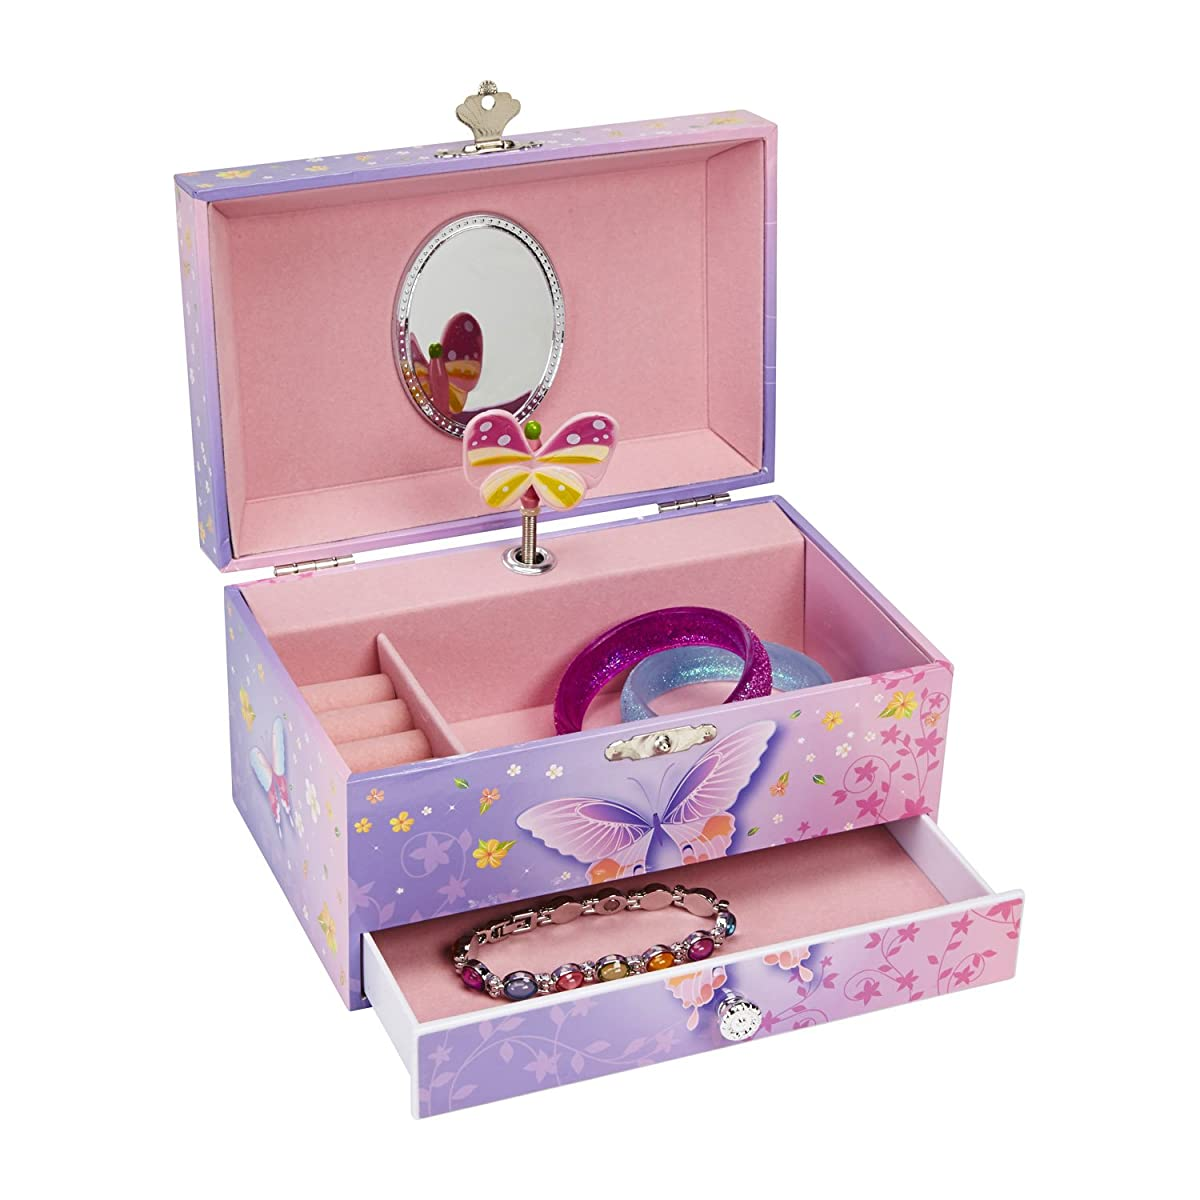 JewelKeeper Butterfly Flower Music Jewelry Box with Pullout Drawer, Jewel Storage Case, Purple and Pink Design, Waltz of the Flowers Tune